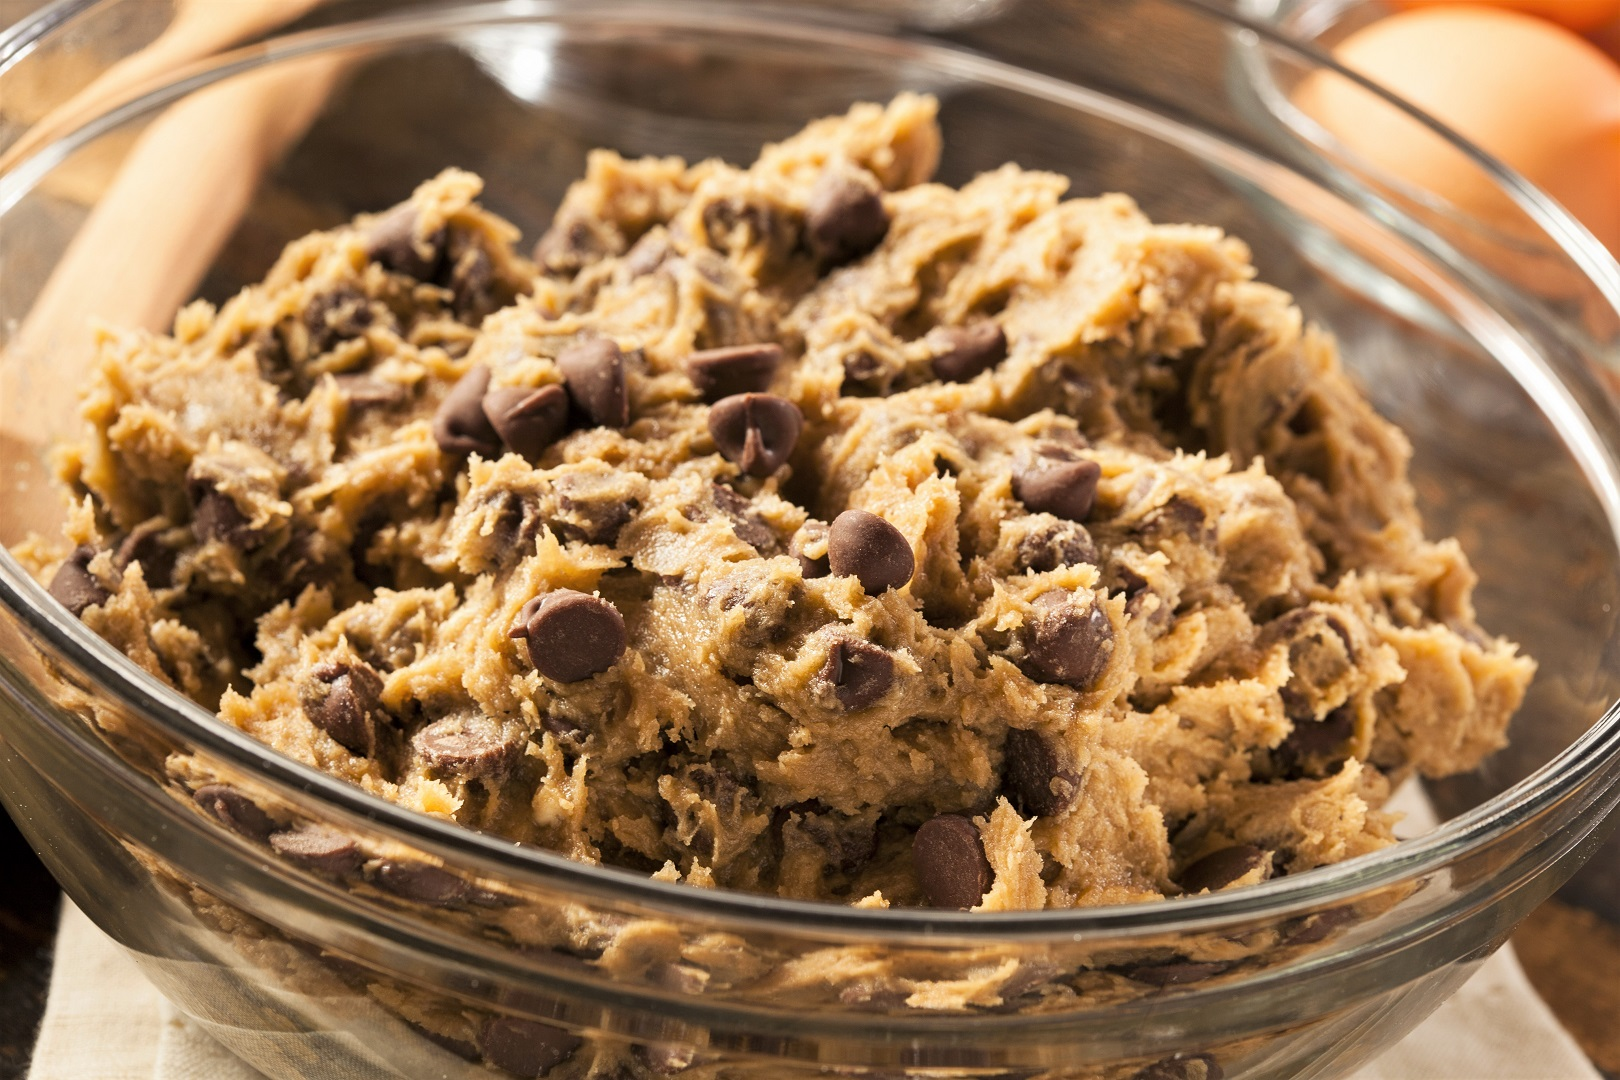 Raw Chocolate Chip Cookie Dough in Bowl